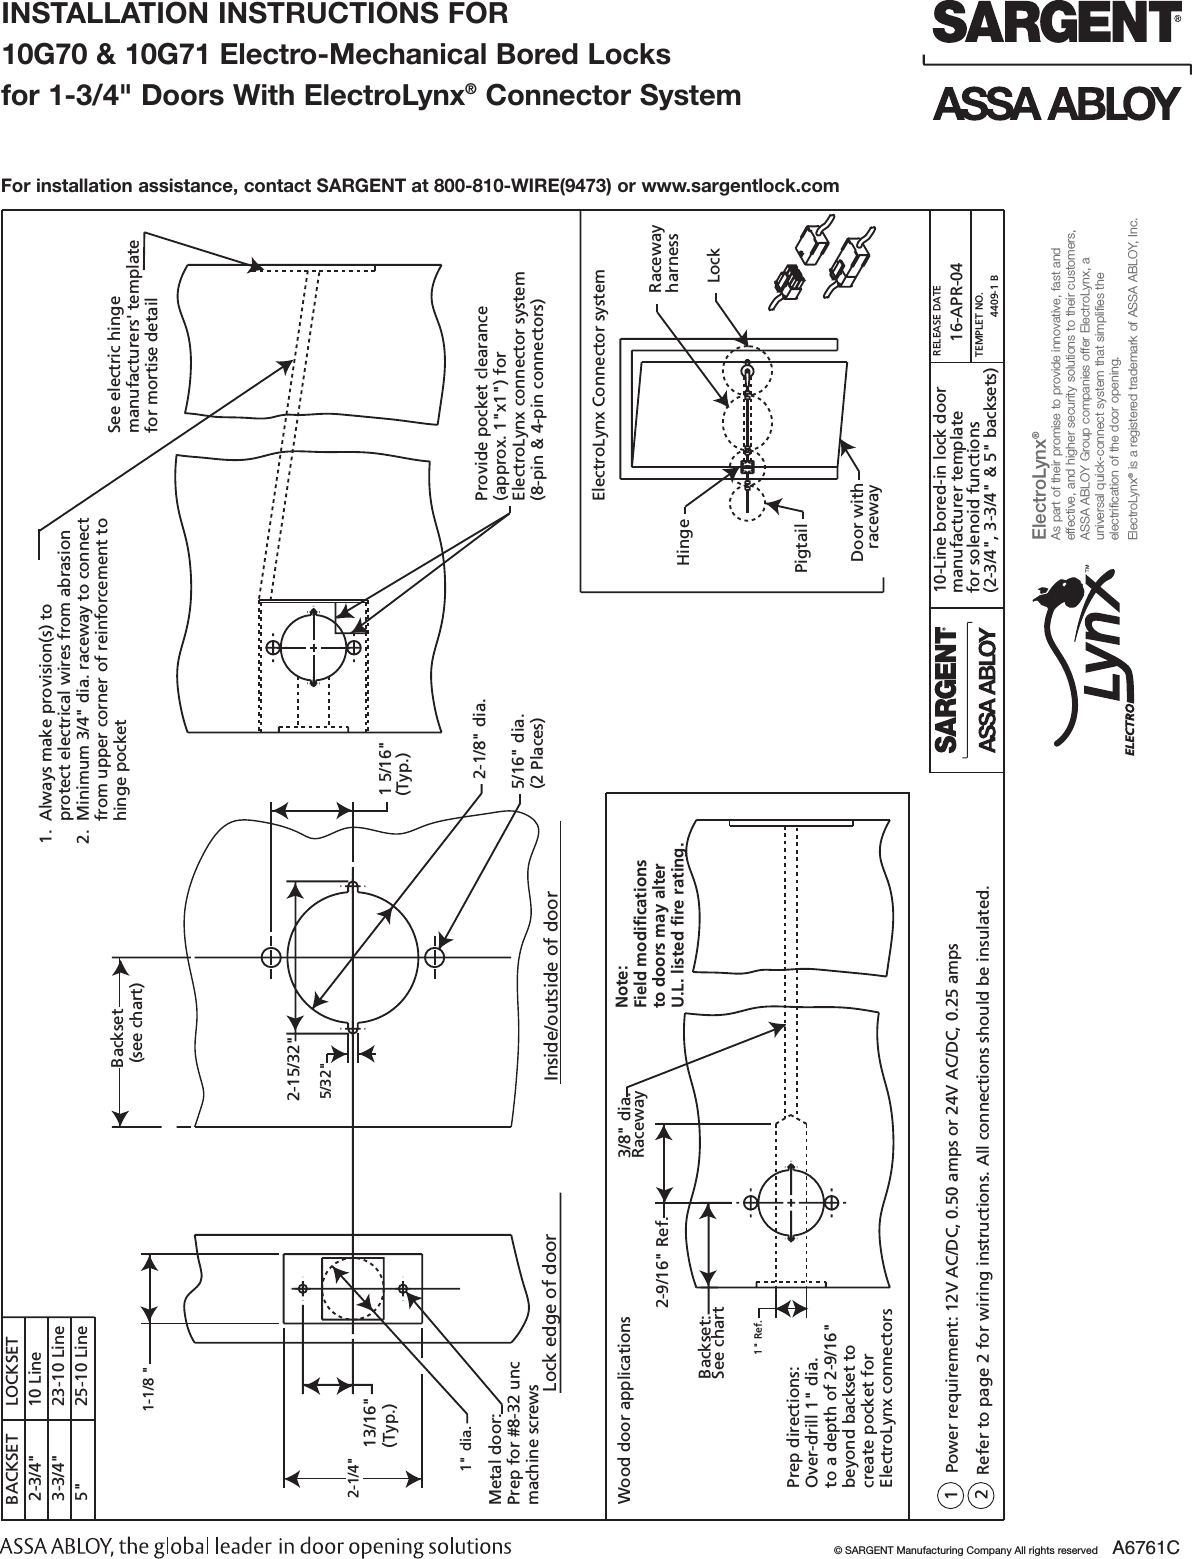 sargent a6761c installation instructions for 10g70 & 10g71 electro  mechanical bored lock 1 3/4 door with elect